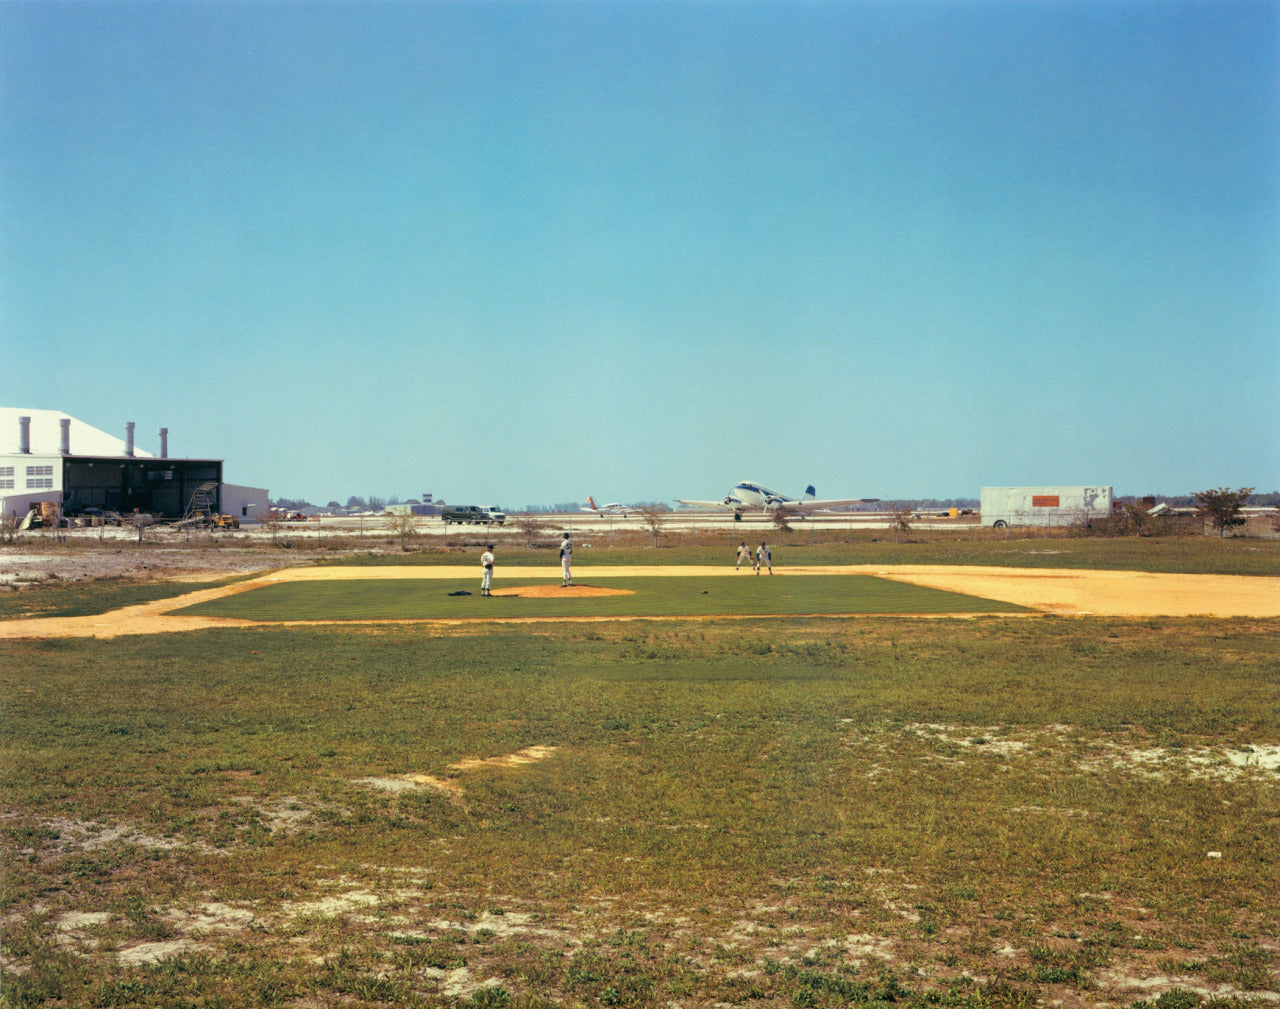 Stephen Shore, Fort Lauderdale, Florida, March 5, 1978